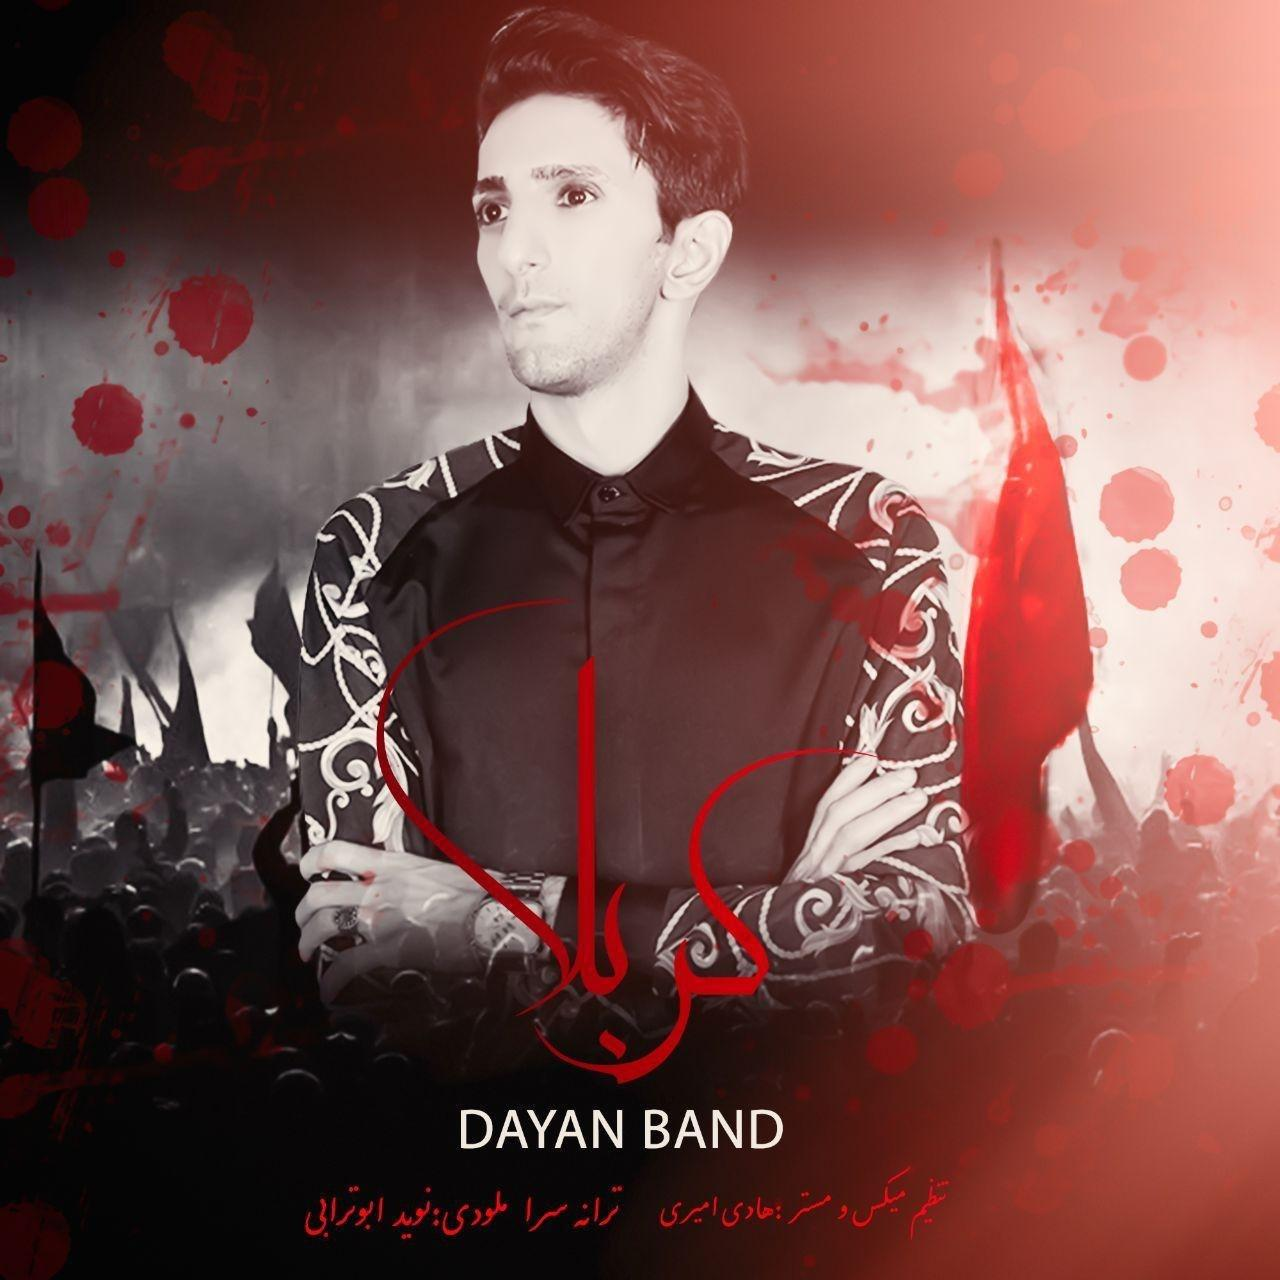 http://s14.picofile.com/file/8408891968/04Dayan_Band_Karbala.jpg